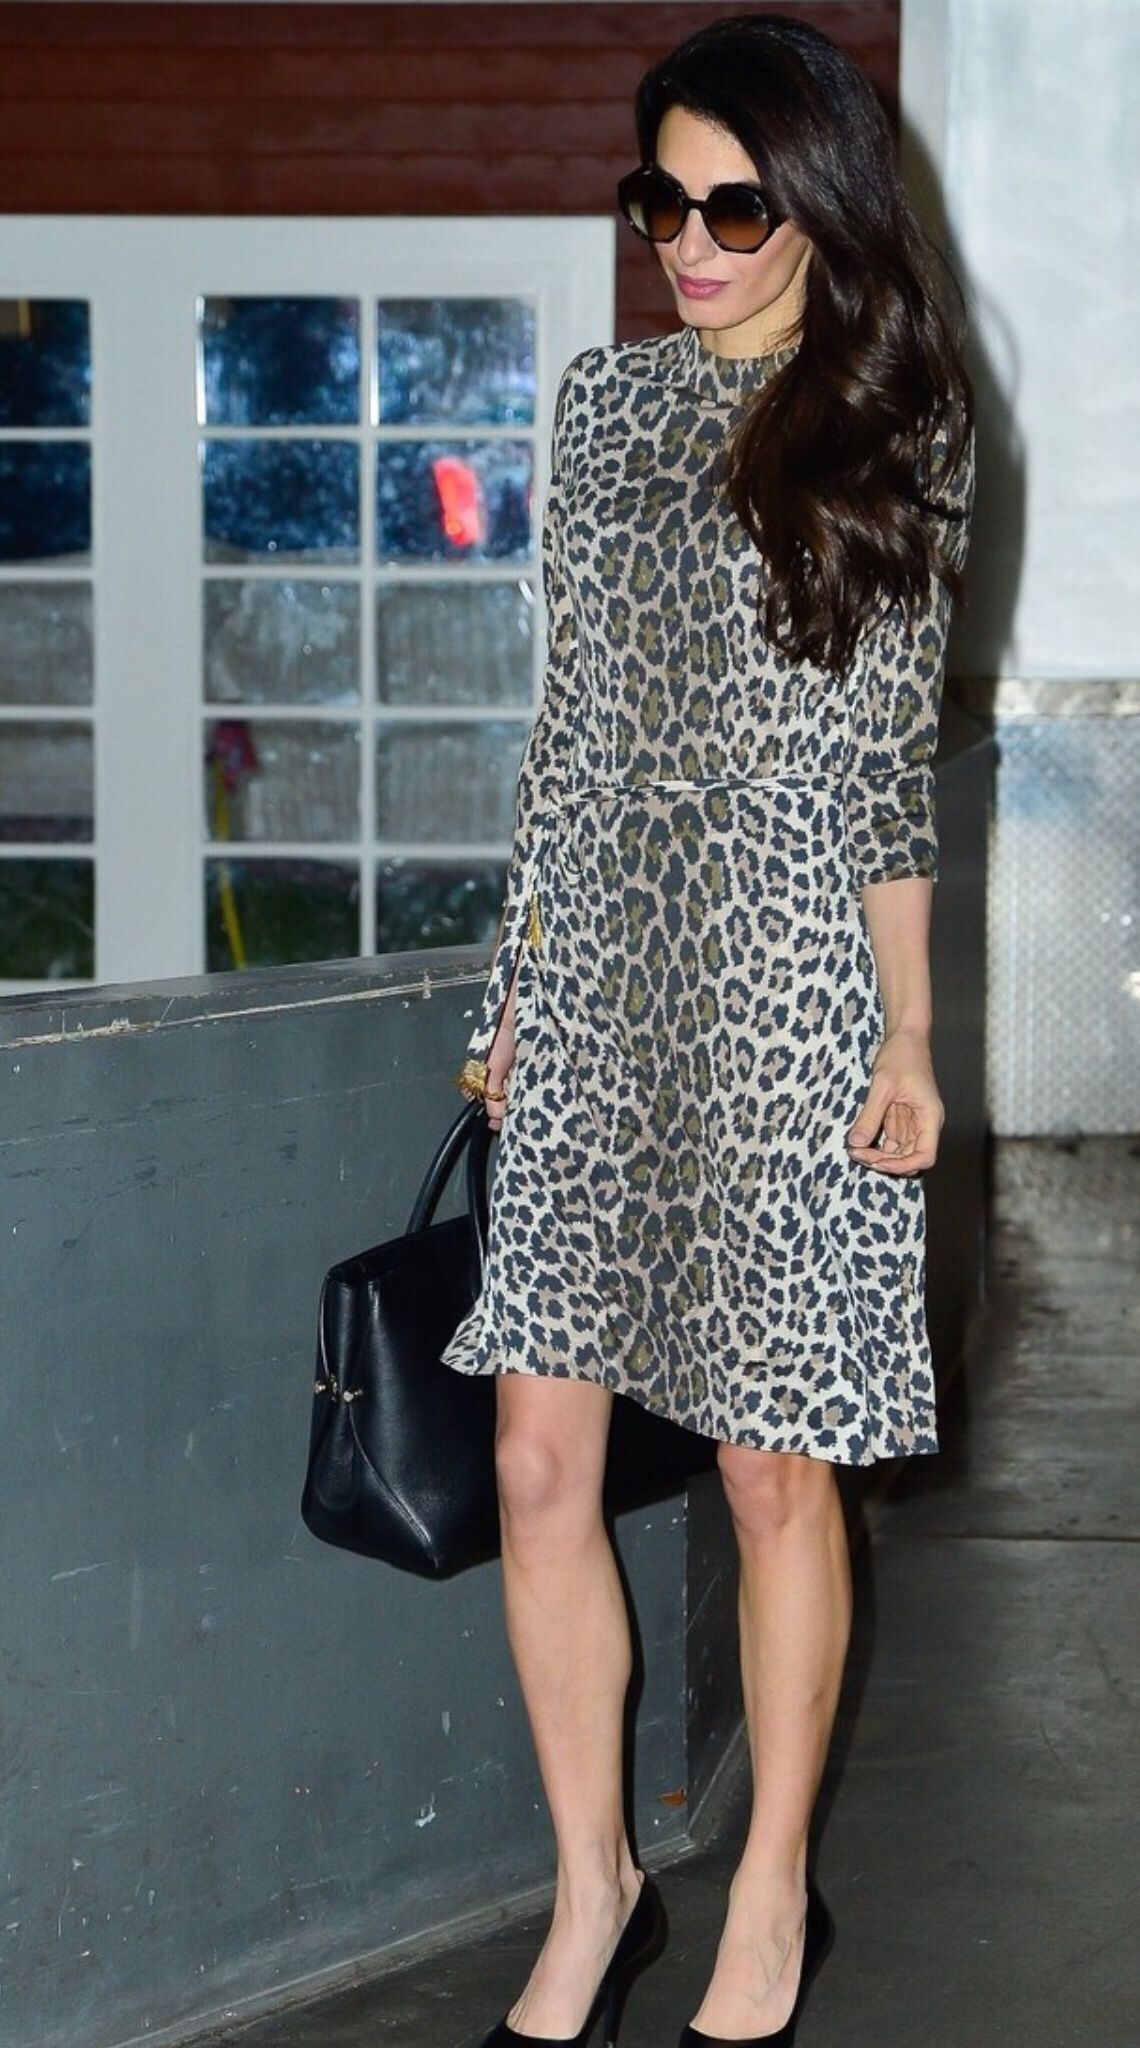 Amal Clooney Style | A blog about Amal's news & style | Page 3